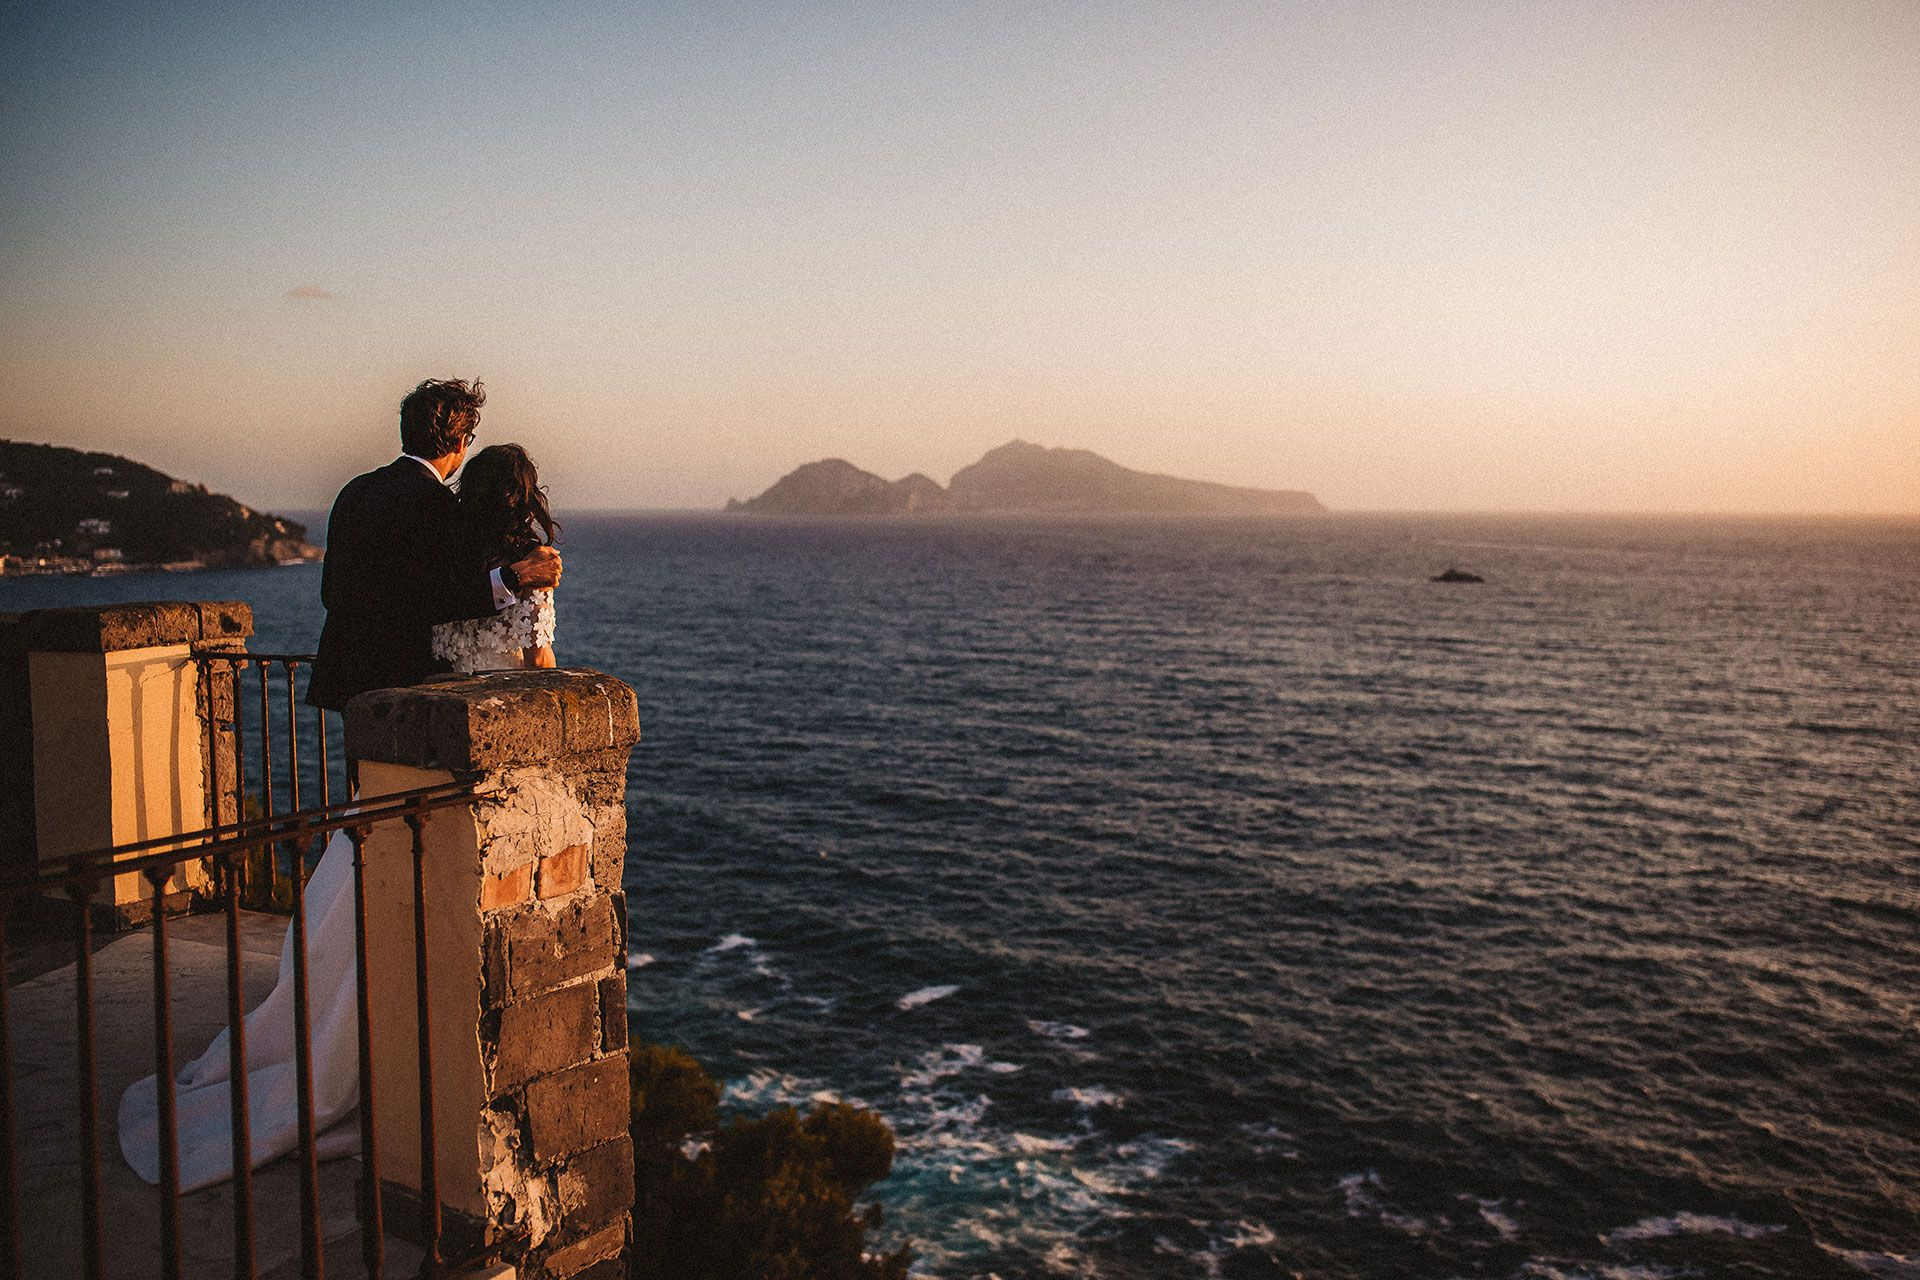 Destination Wedding Photographer In Italy: My Style